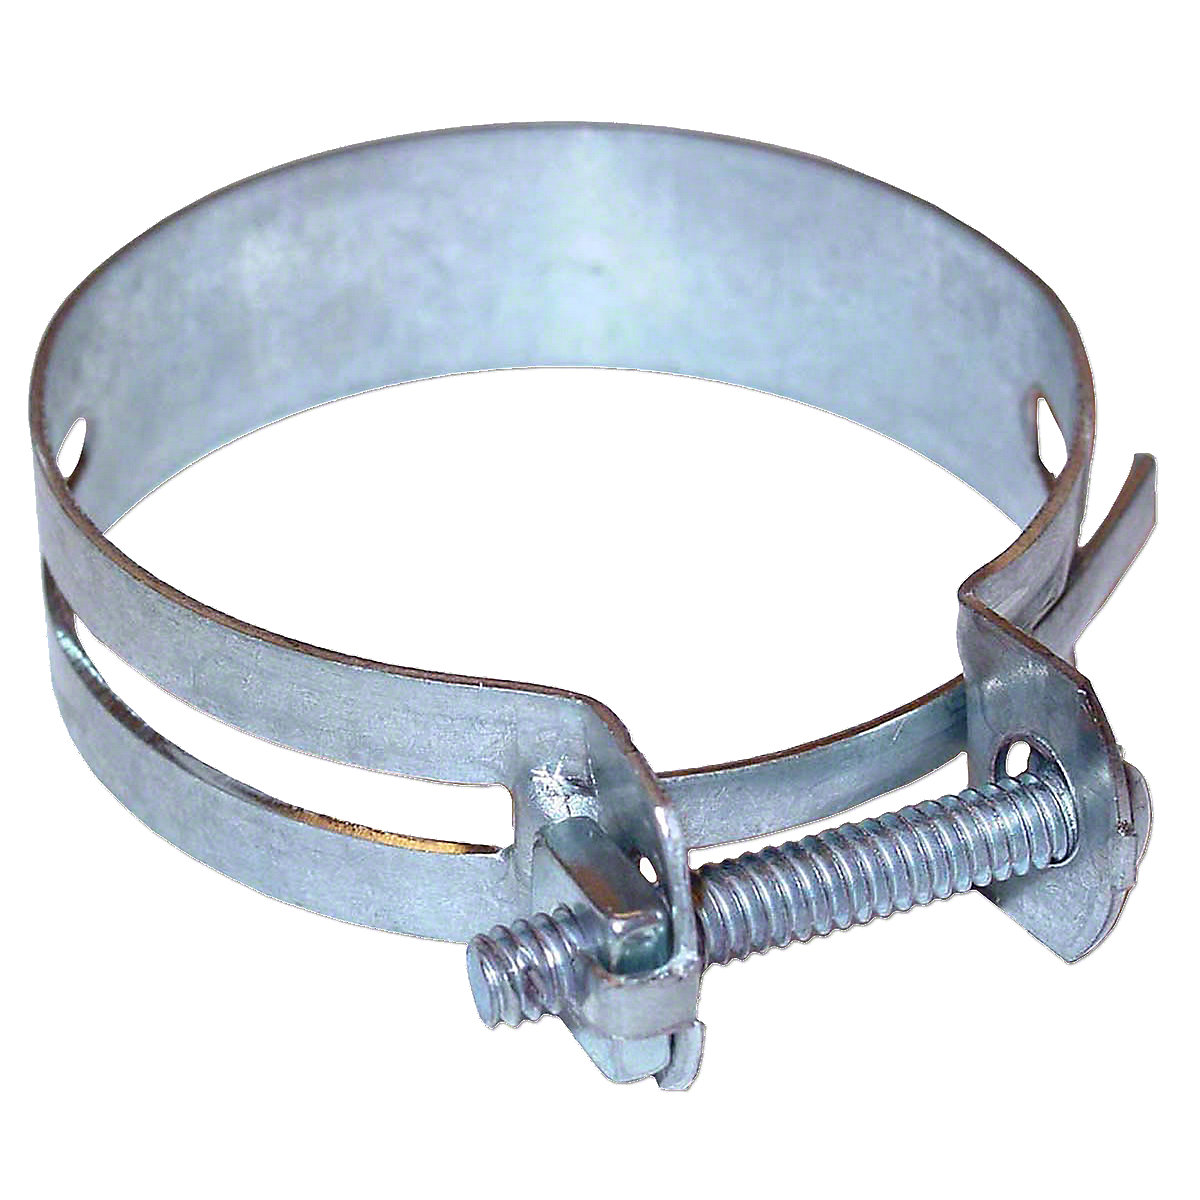 Air Cleaner Hose Clamp For Allis Chalmers: B, C, CA, D10, D12, RC, WC, WD.